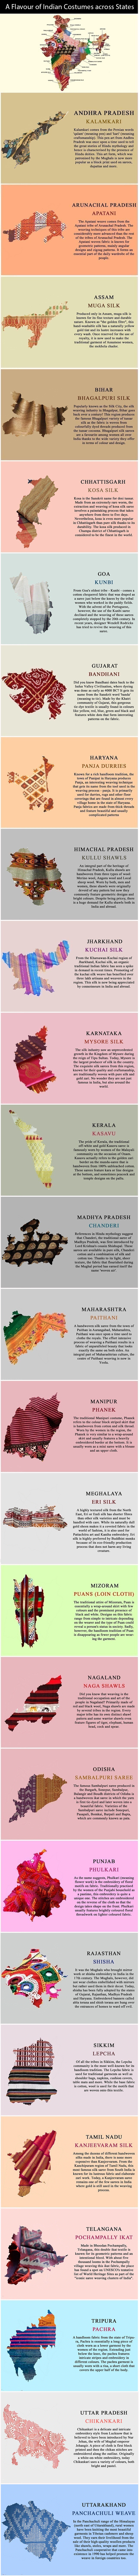 Dresses and Jewellery Traditions across different States of India ...